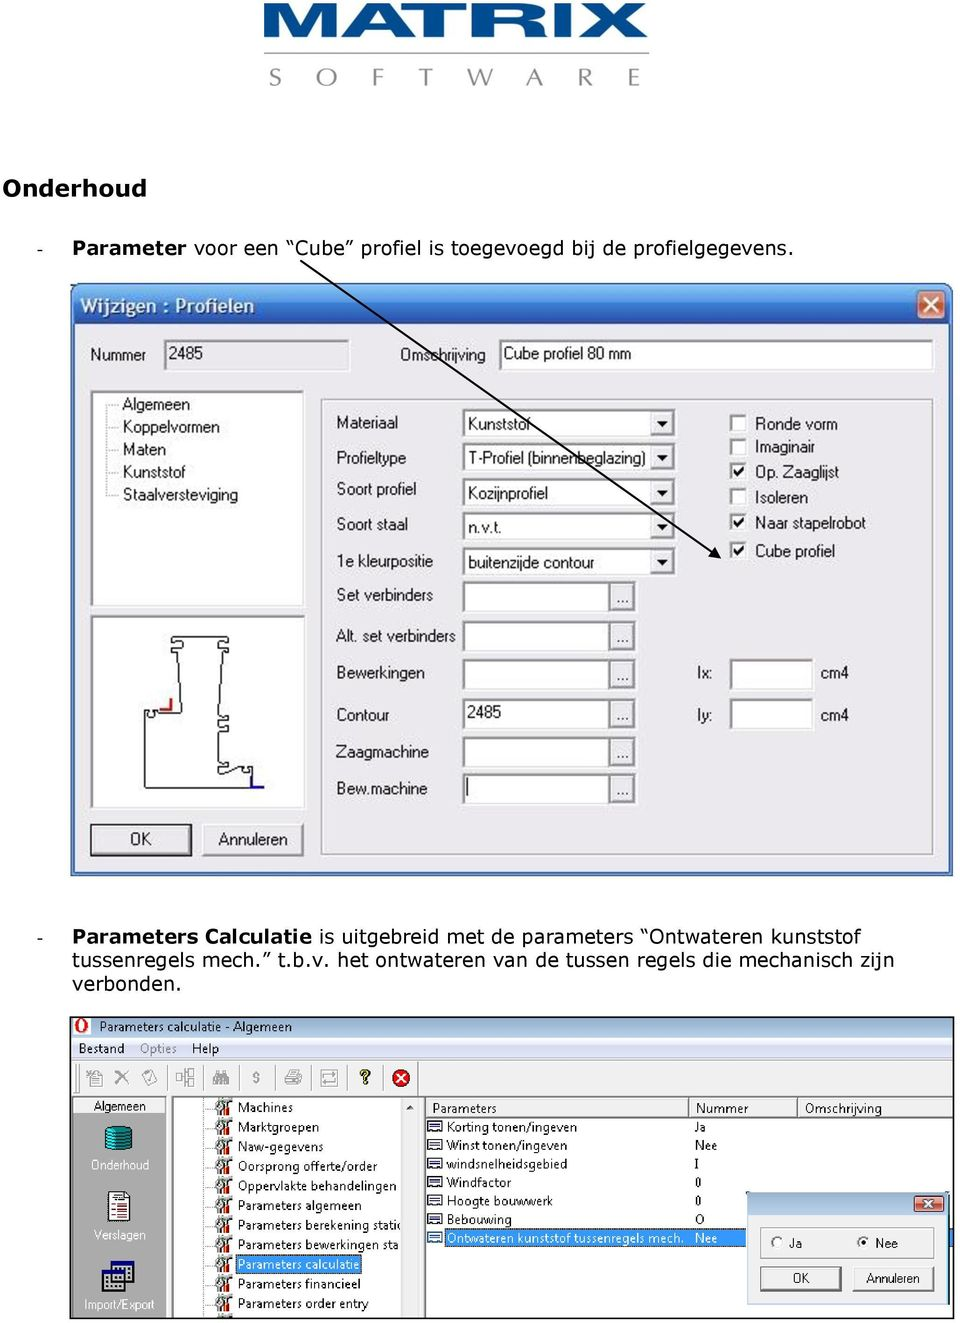 - Parameters Calculatie is uitgebreid met de parameters